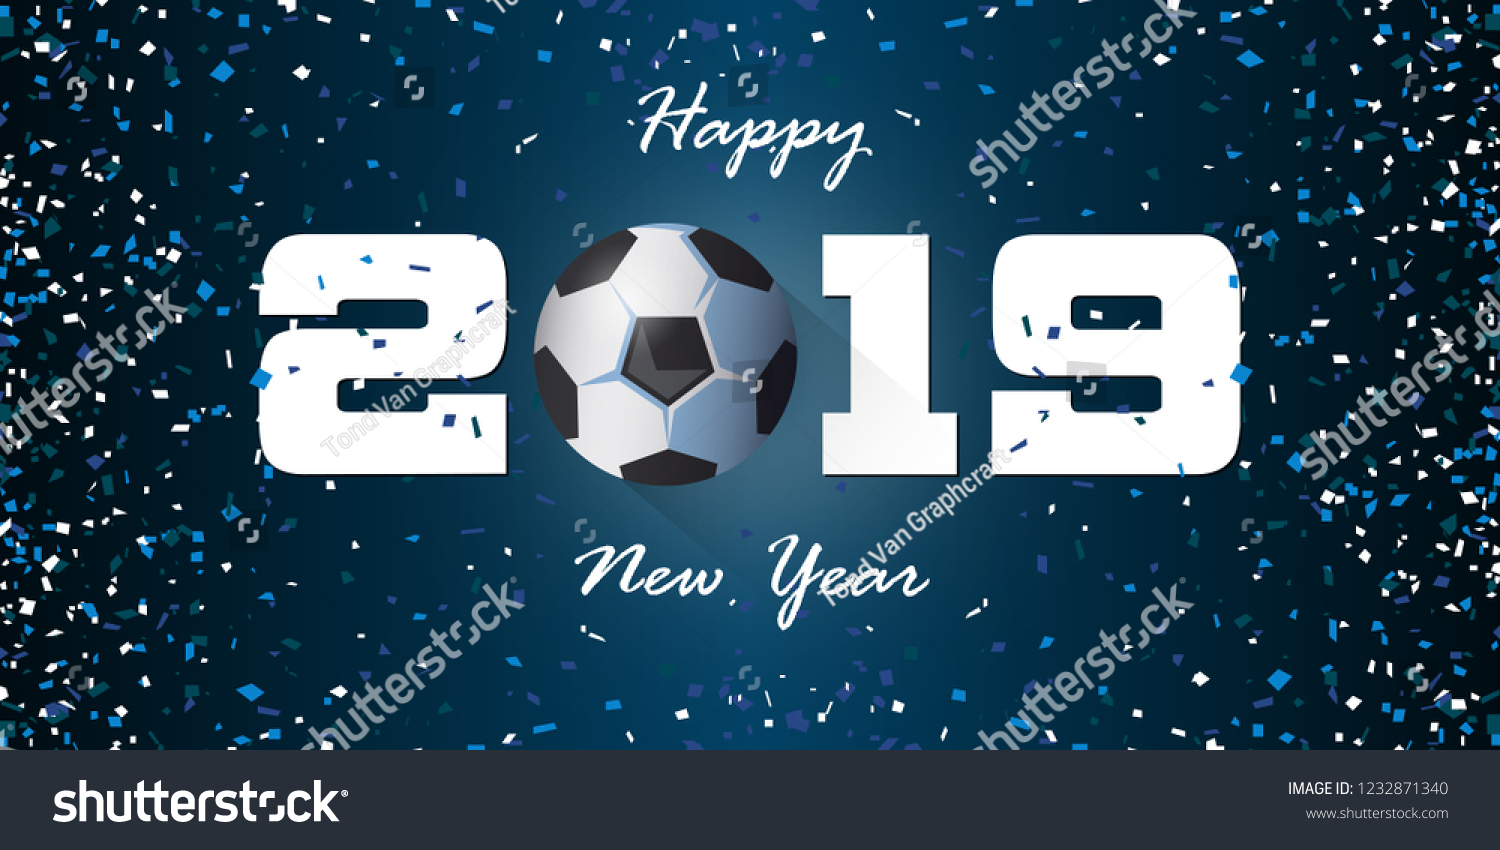 Happy New Year 2019 Banner Paper Stock Vector Royalty Free